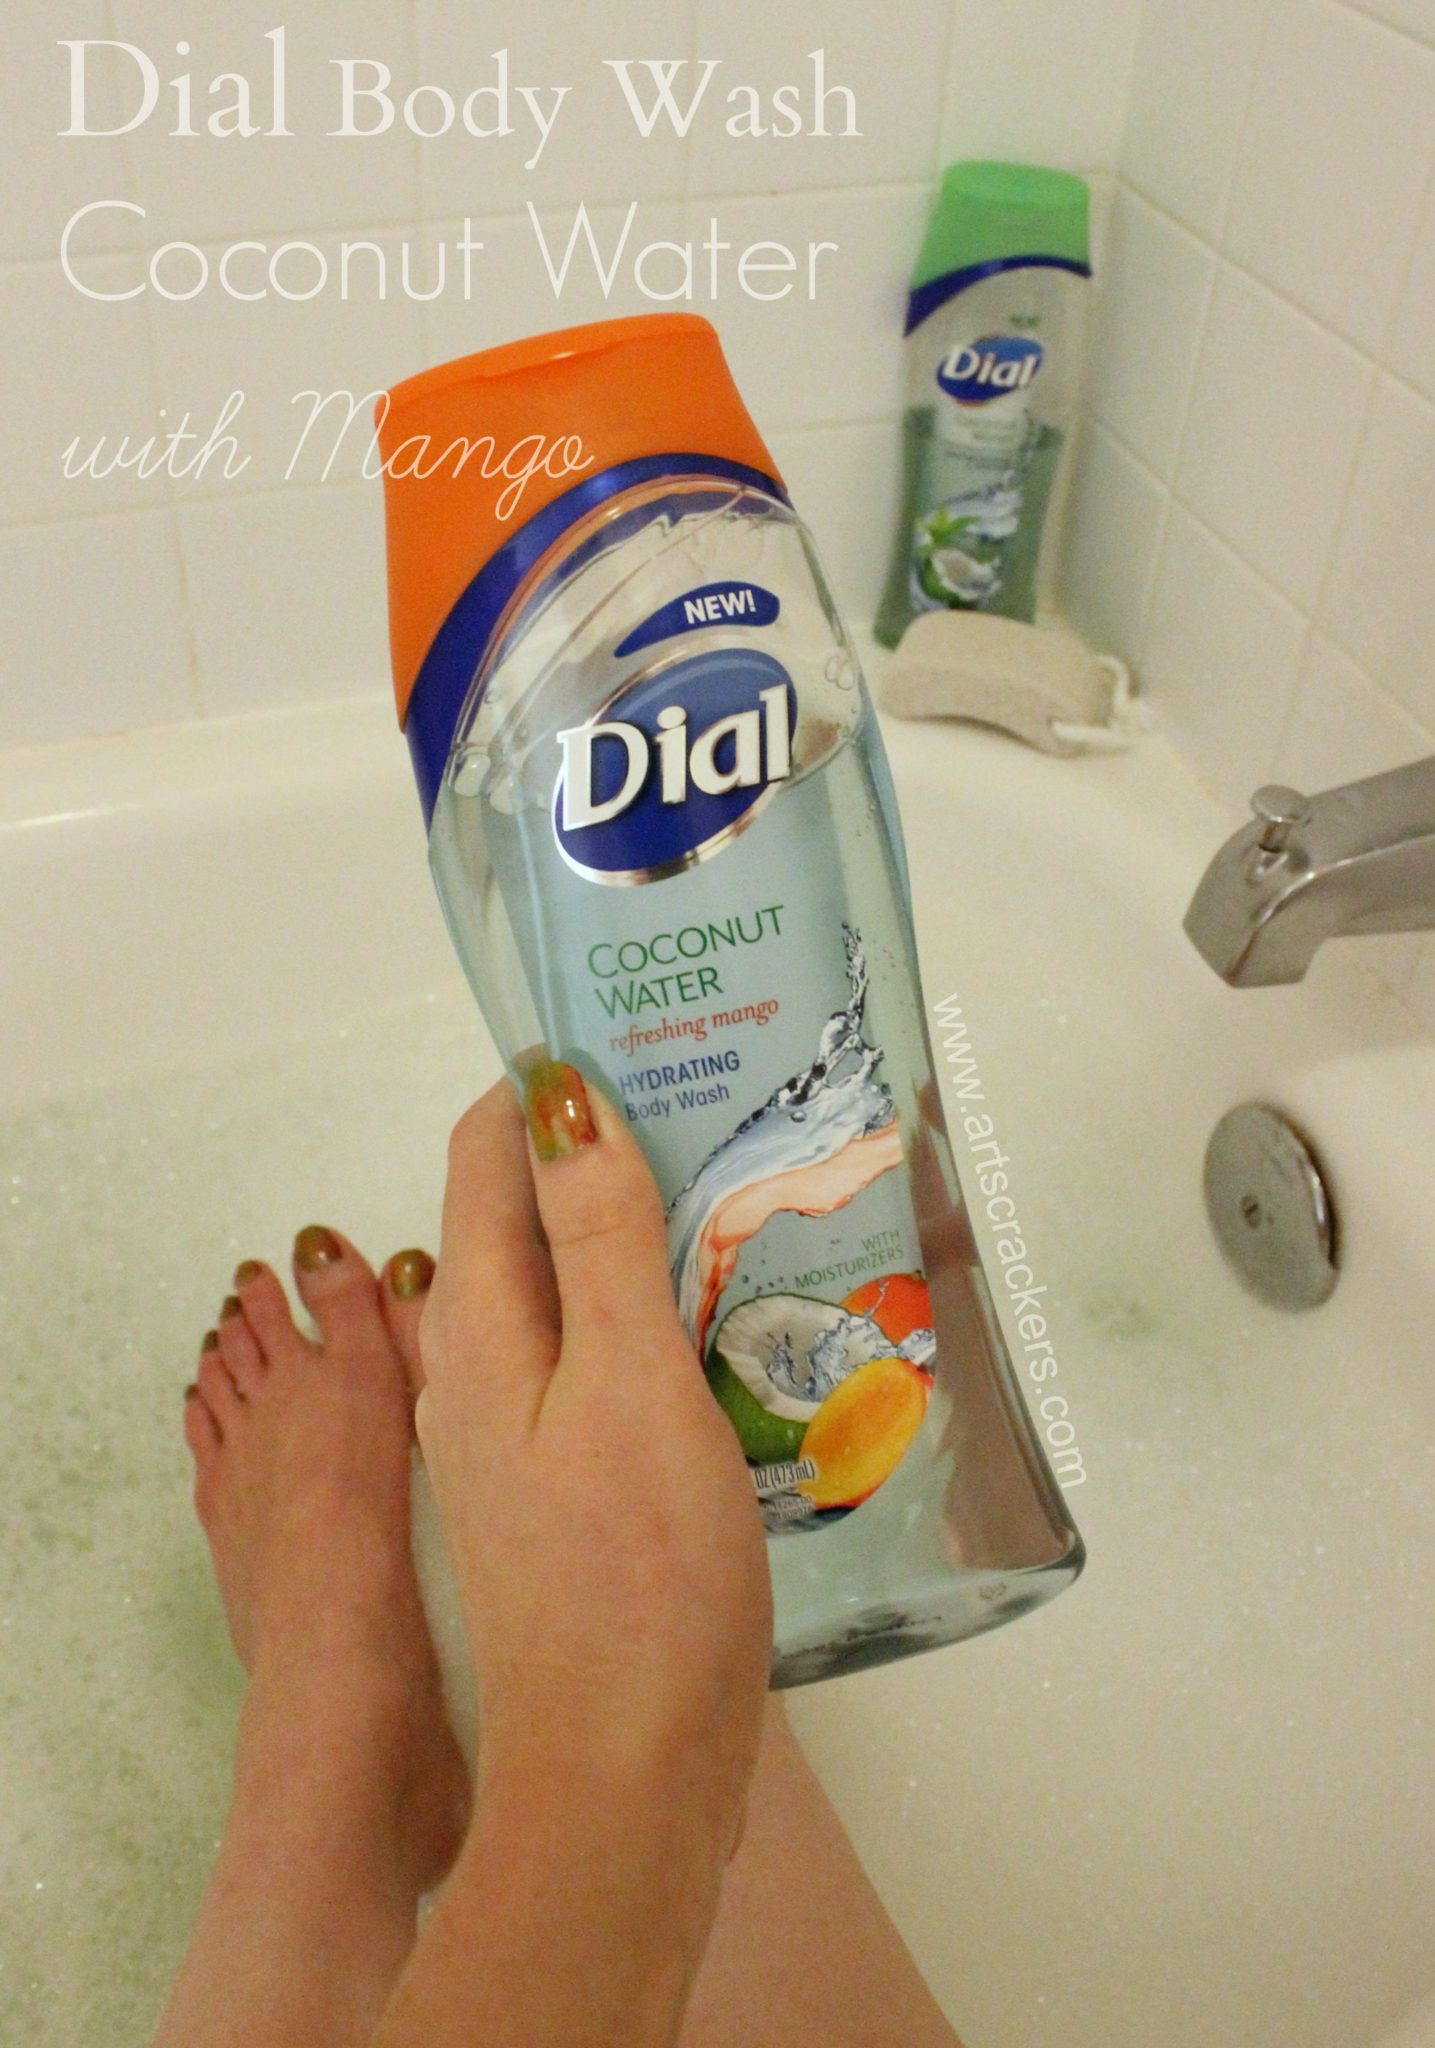 Dial Body Wash Coconut Water with Mango